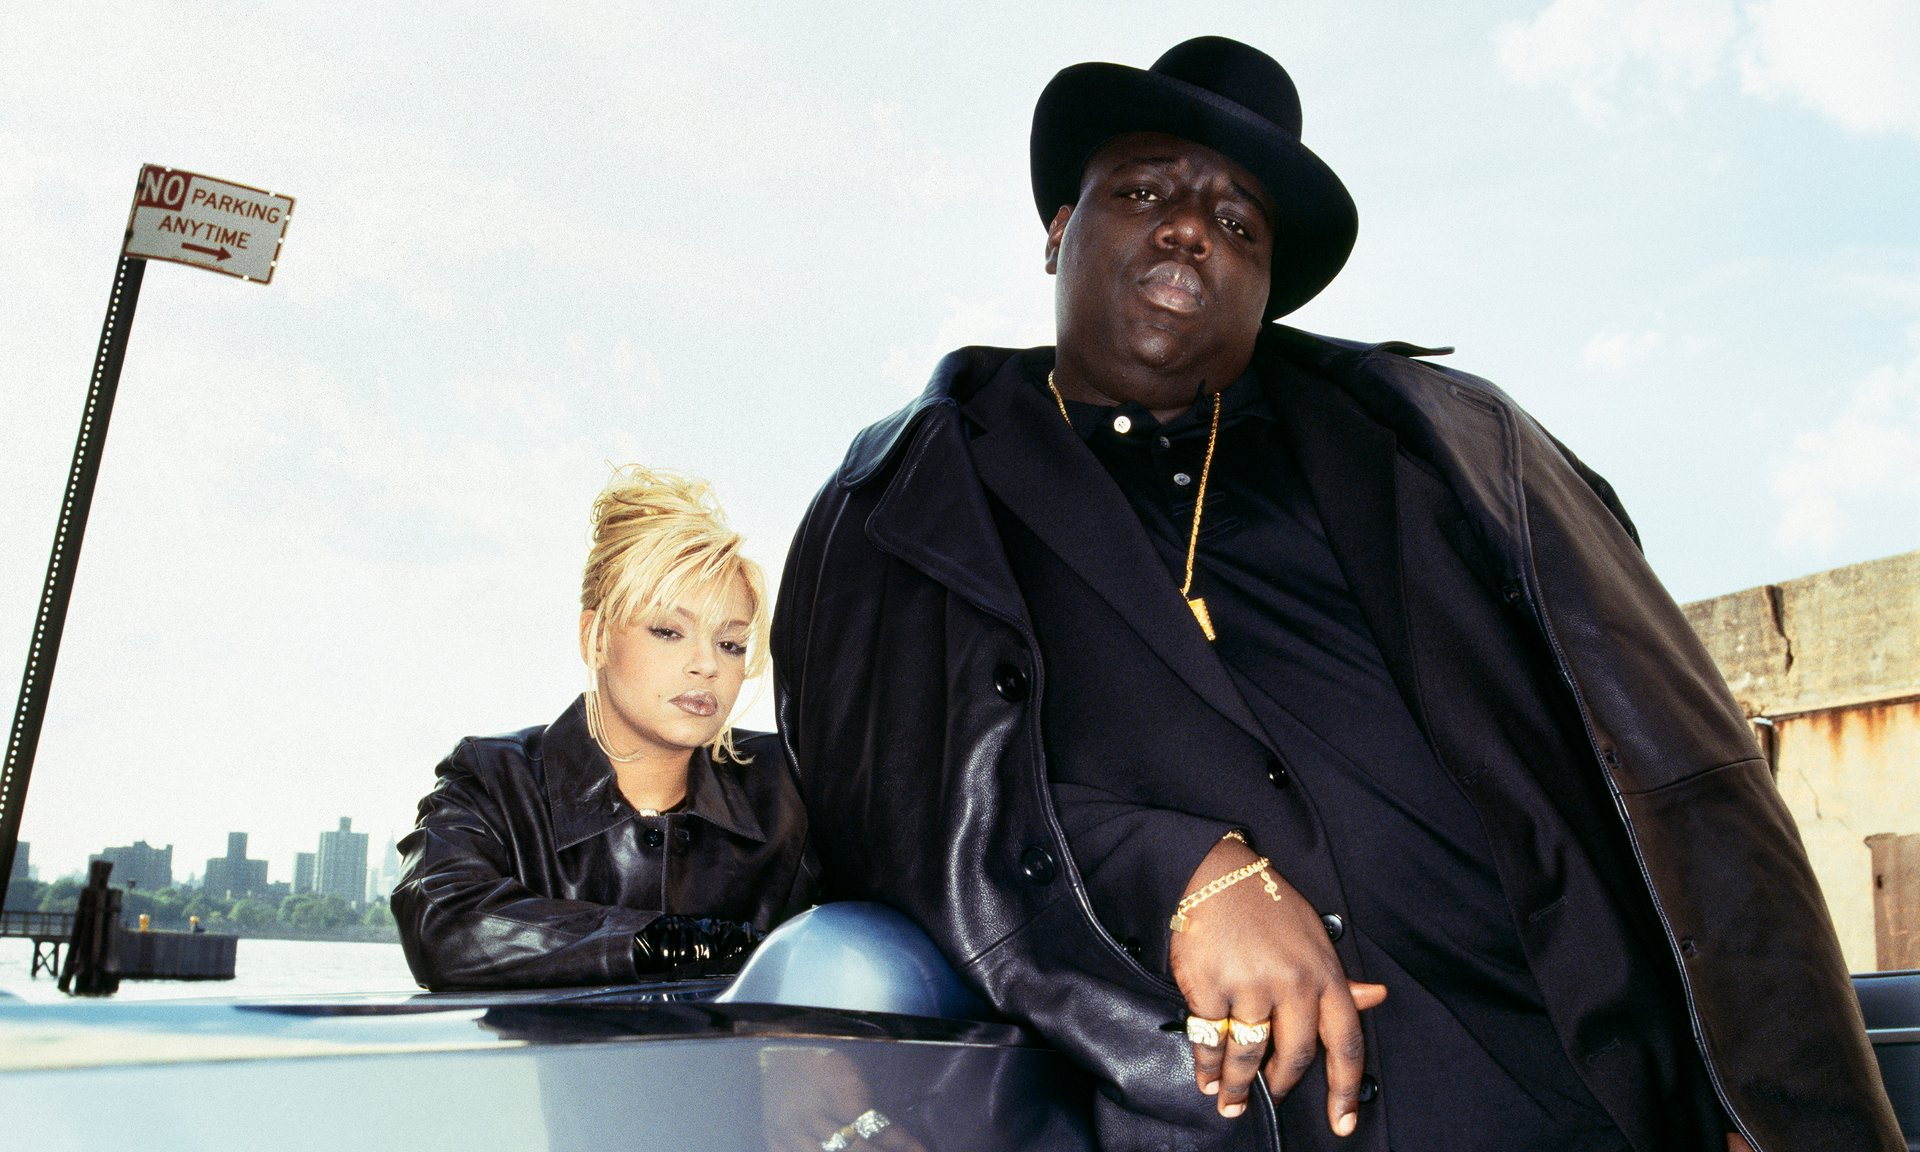 notorious big faith evans